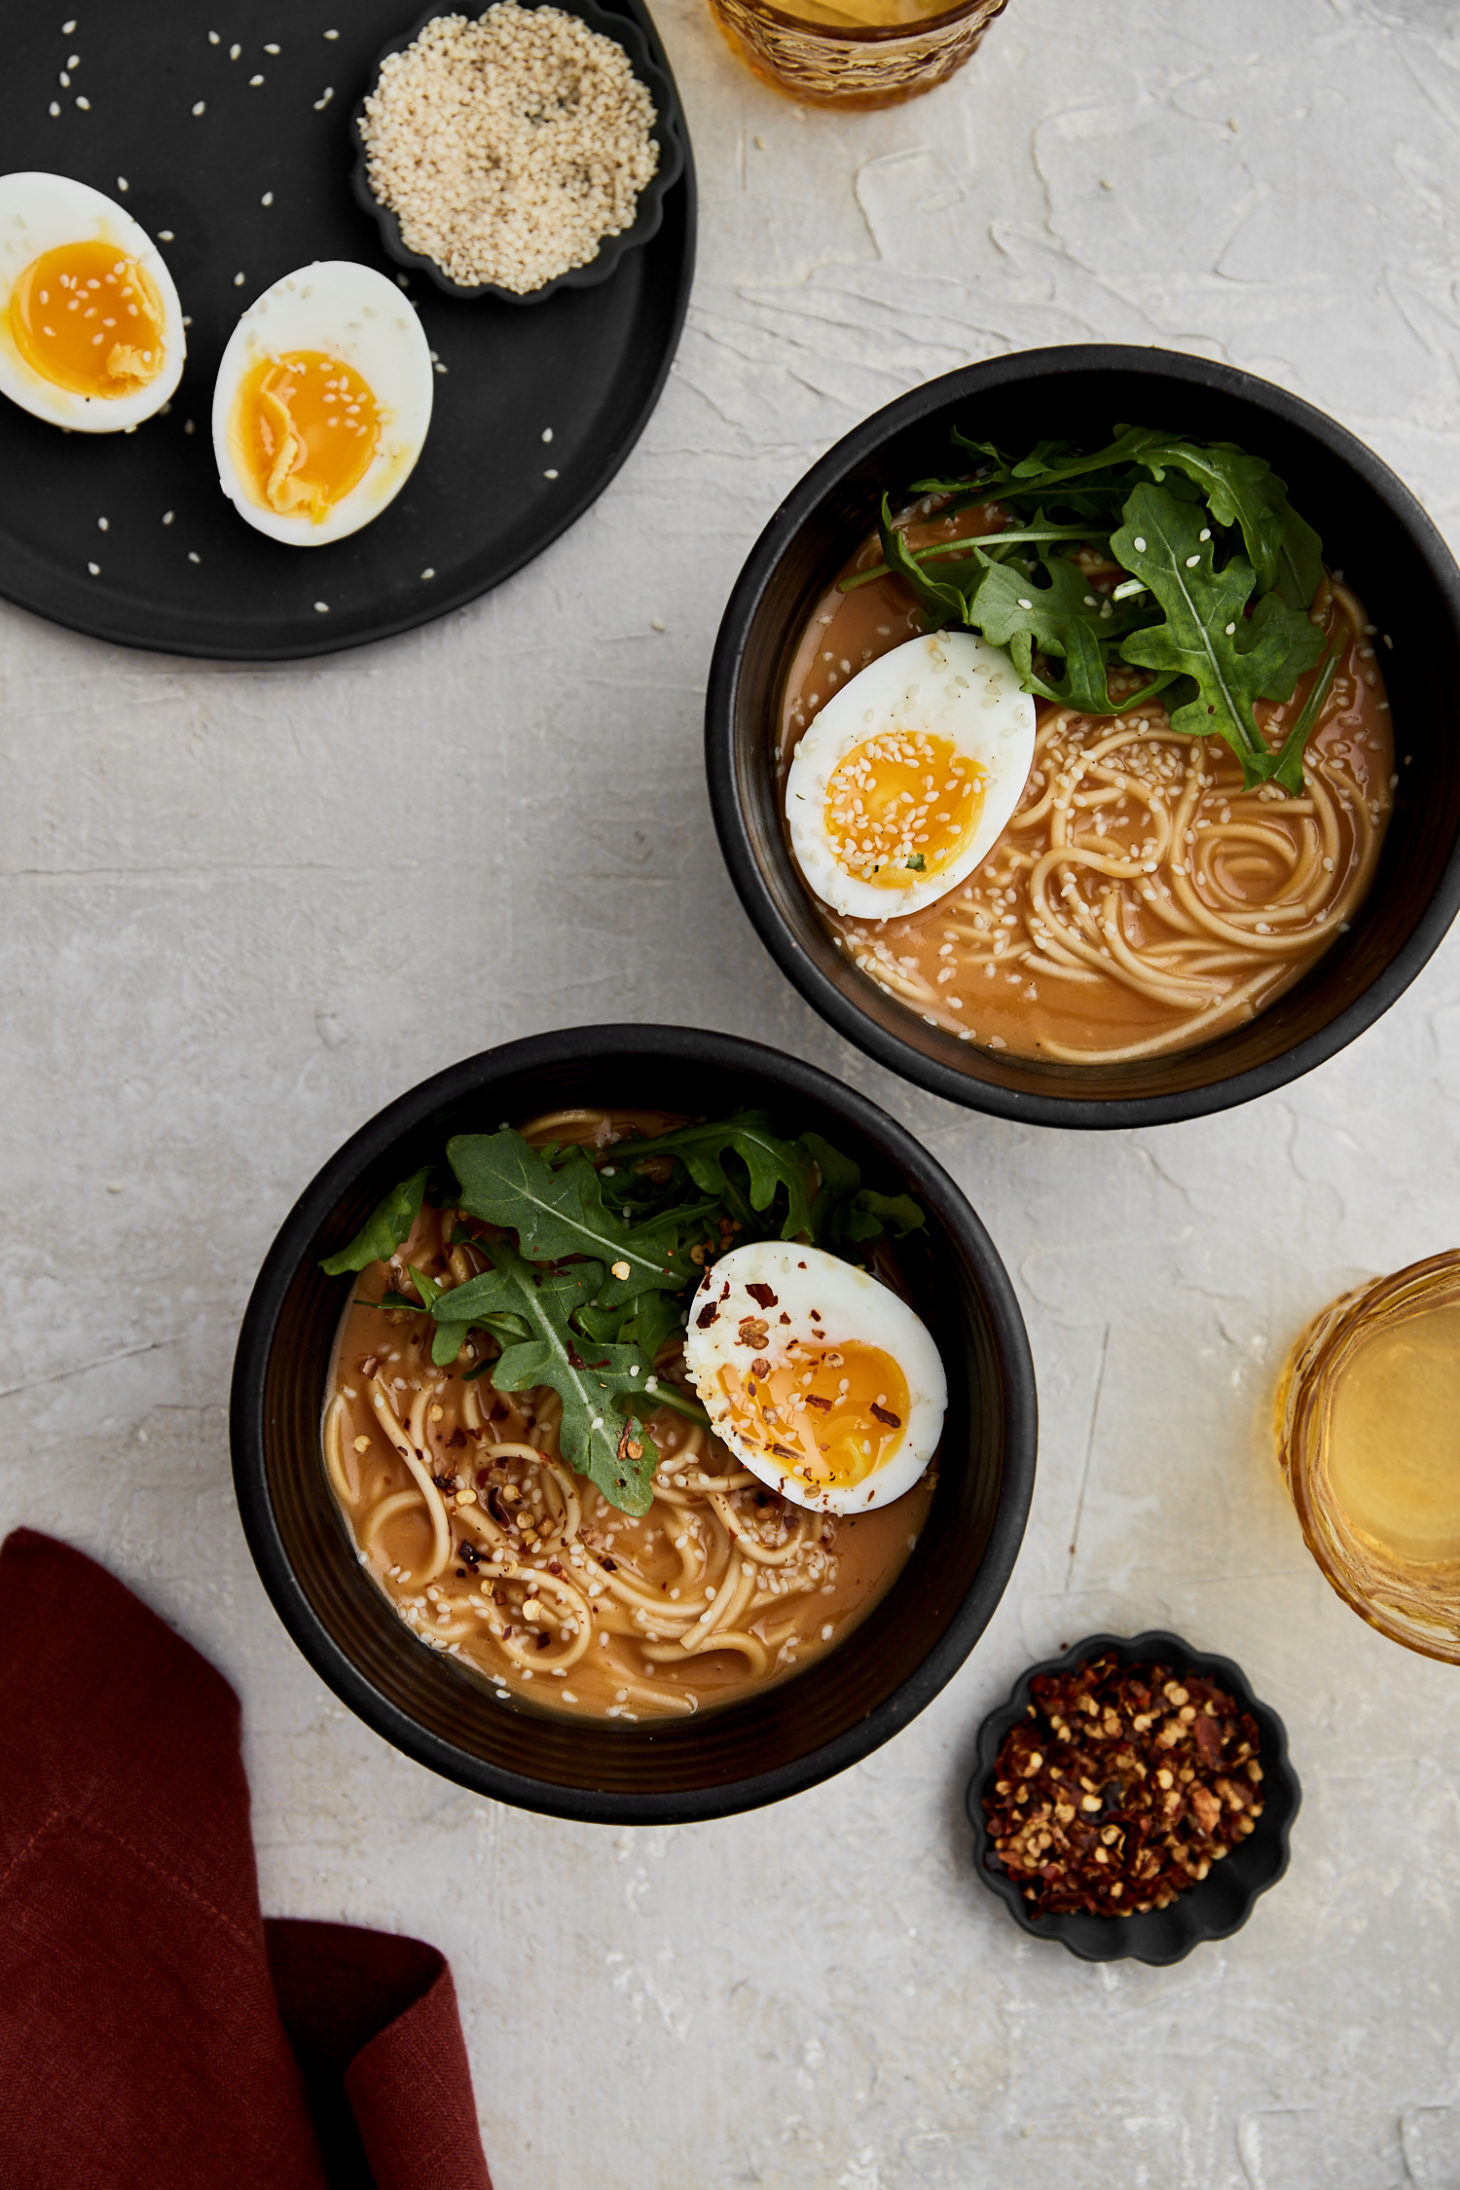 two black bowls of noodles in broth topped with arugula and cut-open soft-boiled eggs.